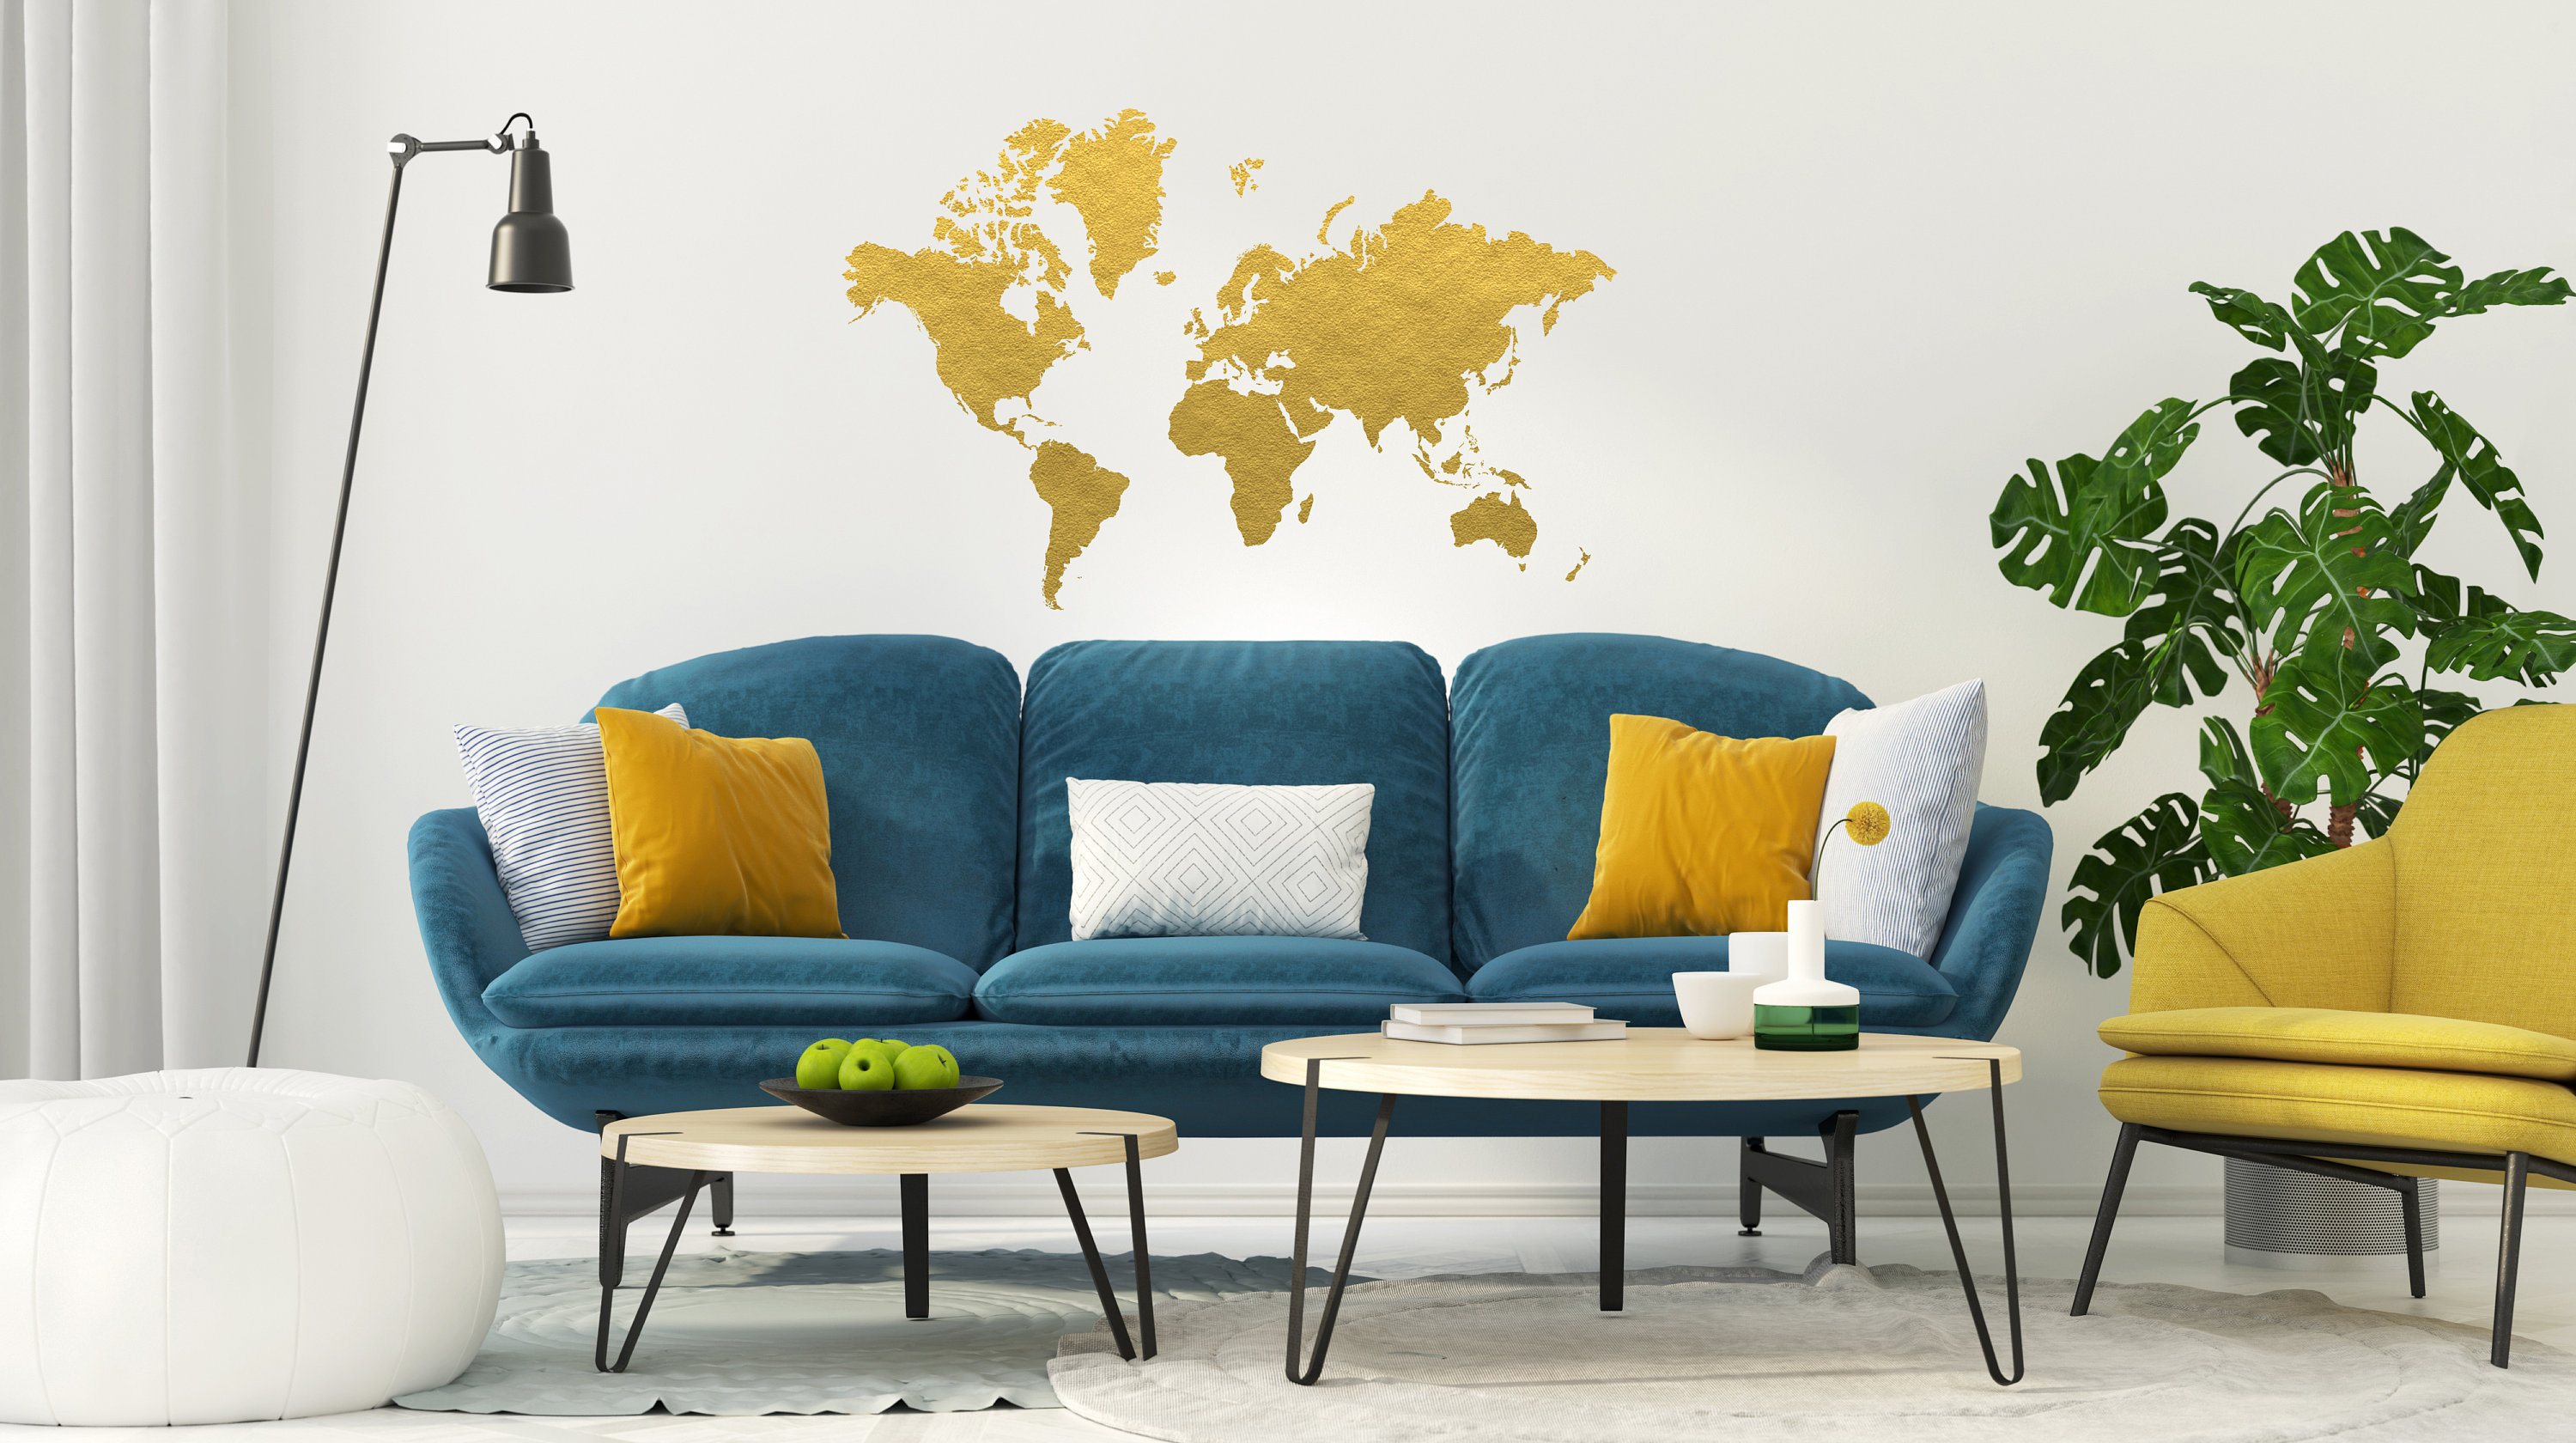 Gold world map wall decal gold office decor bedroom wall zoom gumiabroncs Choice Image